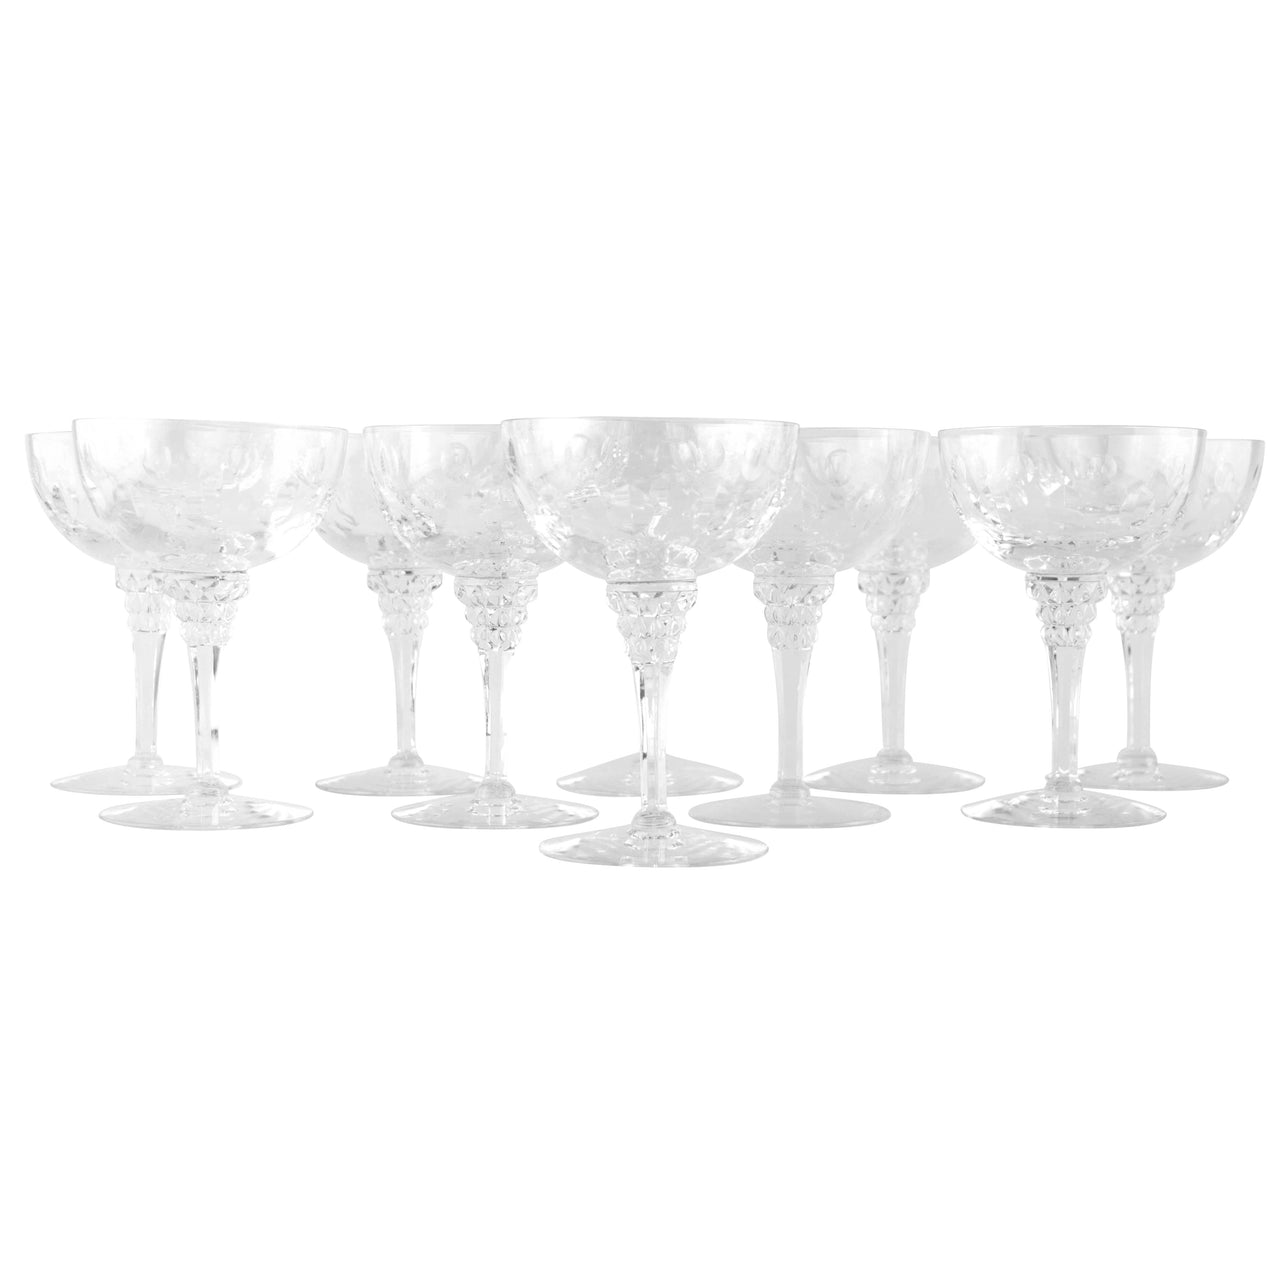 Tiffin Cut Crystal Coupe Glasses | The Hour Shop Vintage